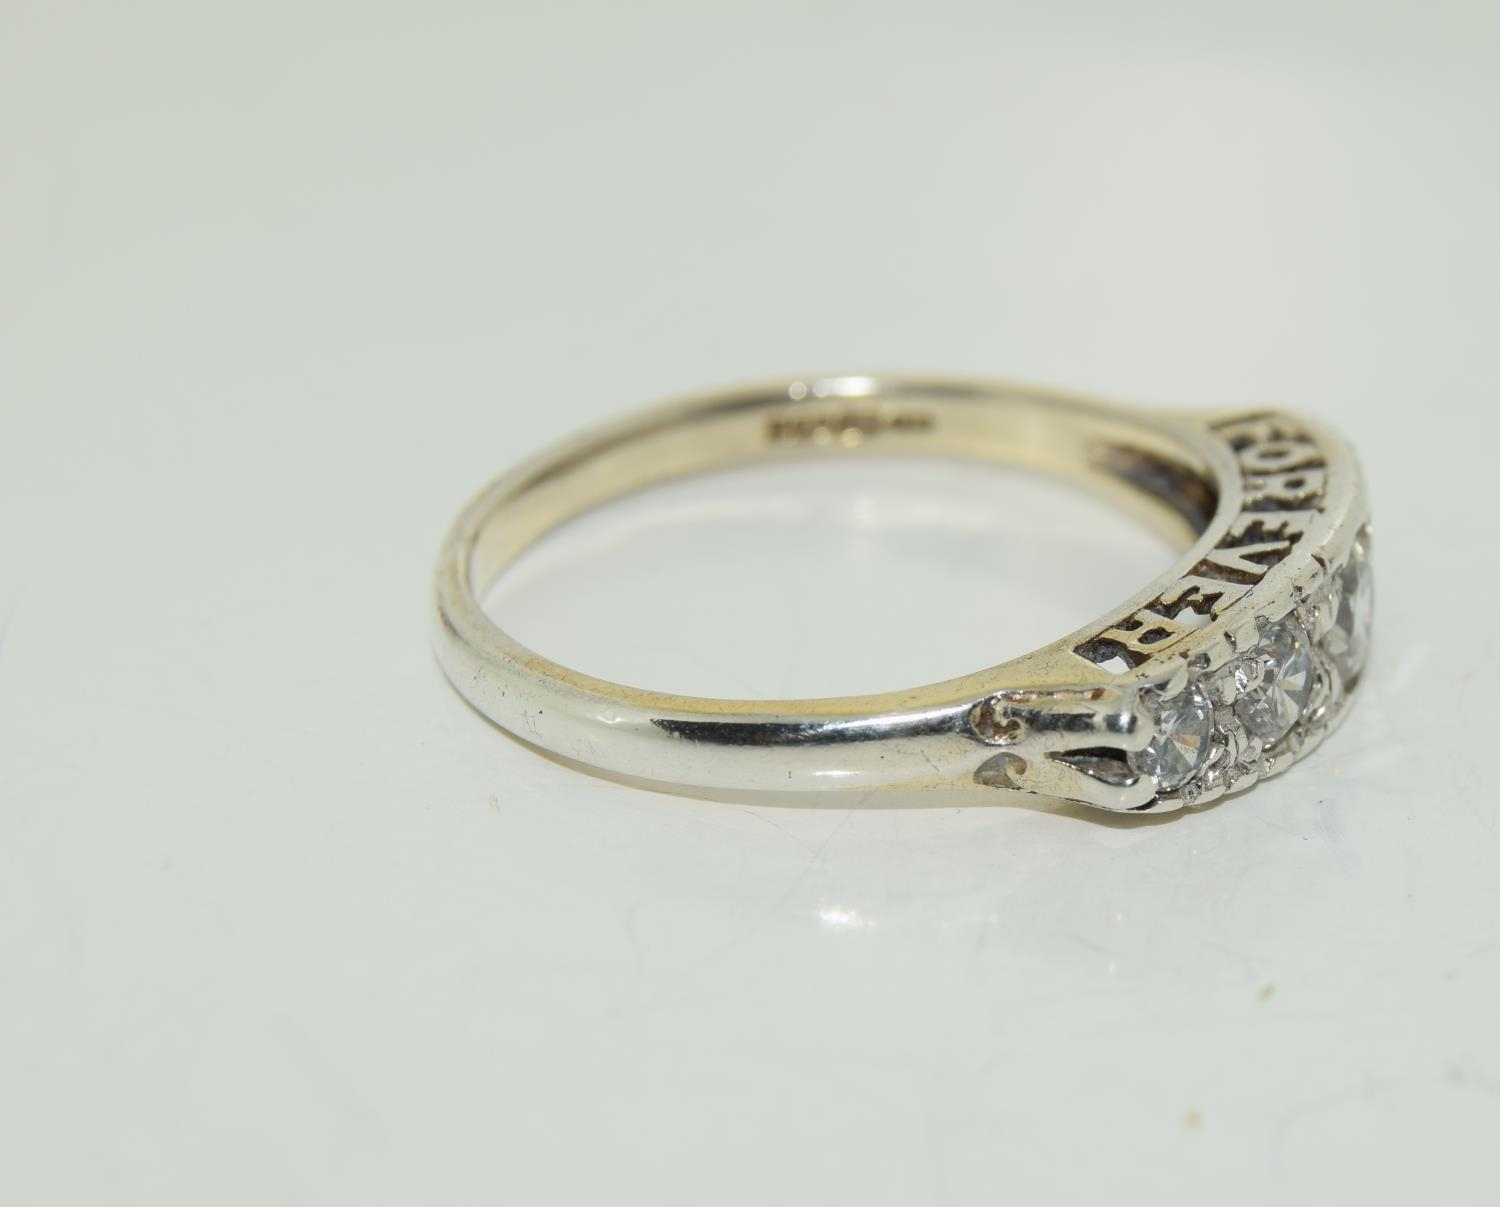 Large 'Always Forever' CZ 925 silver ring, Size W. - Image 2 of 4